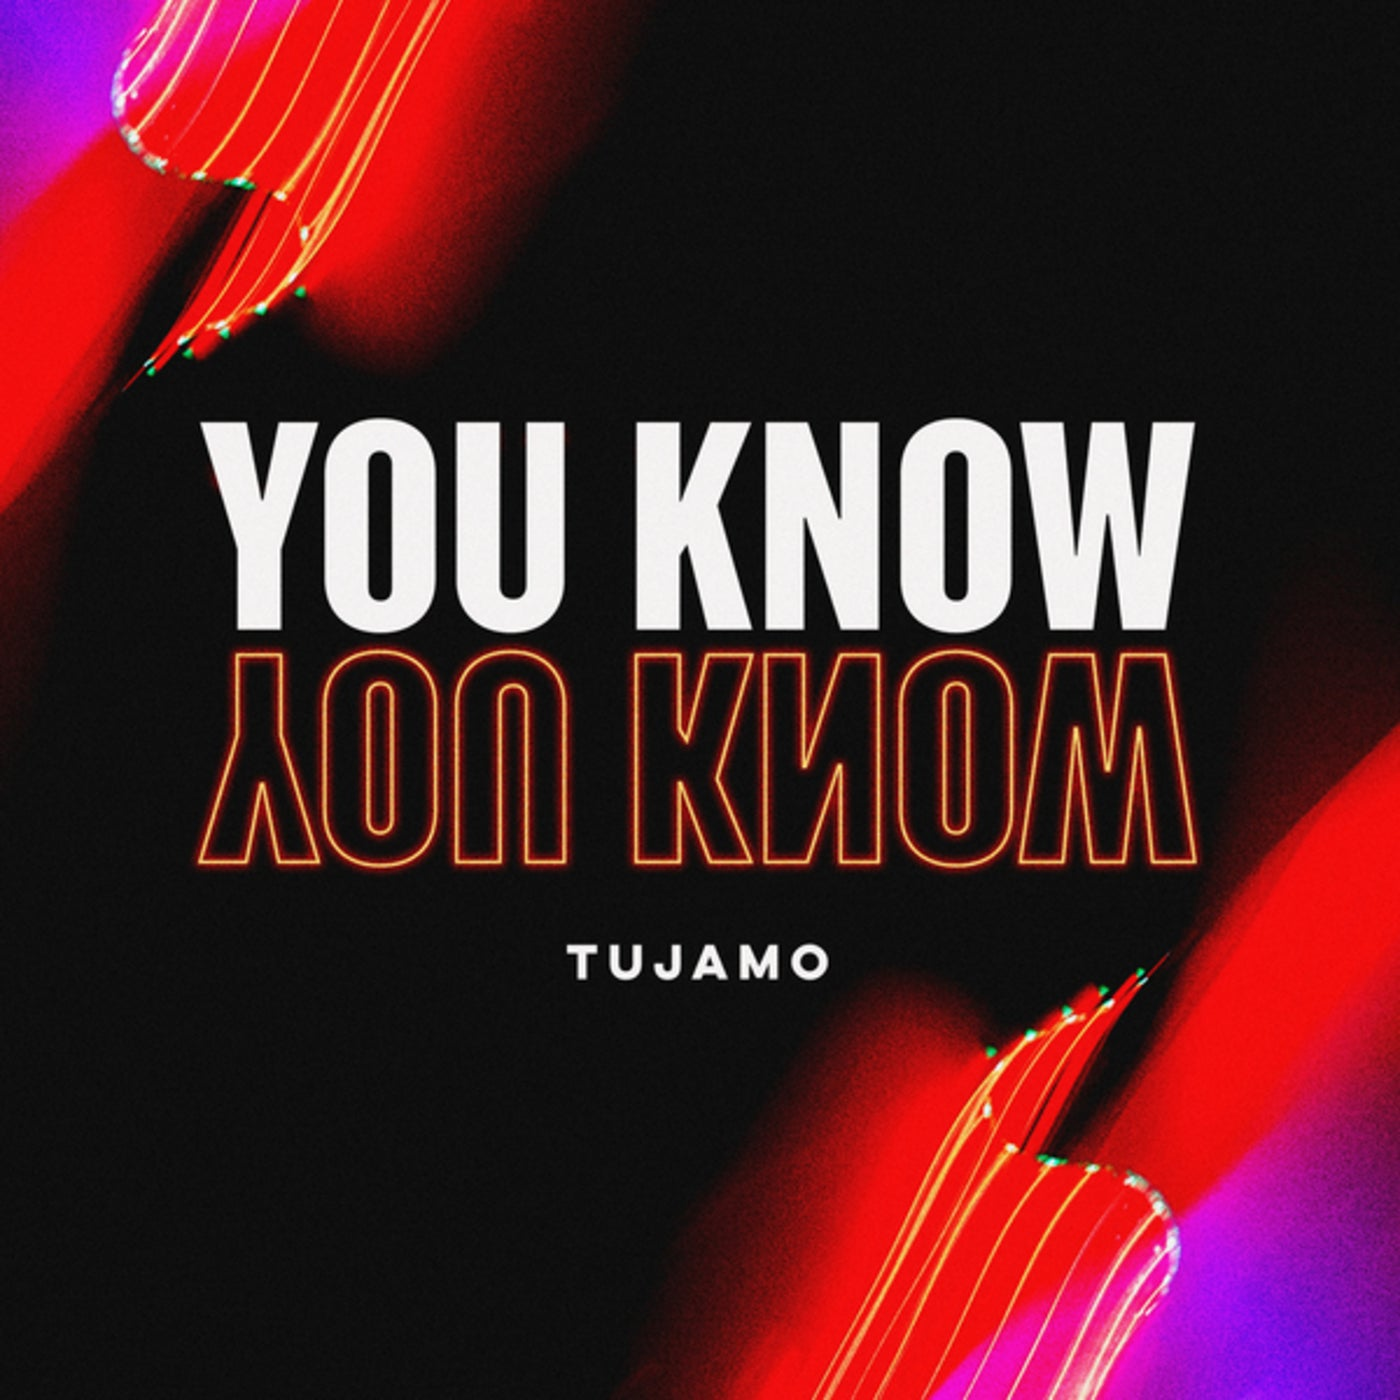 You Know (Extended Mix)